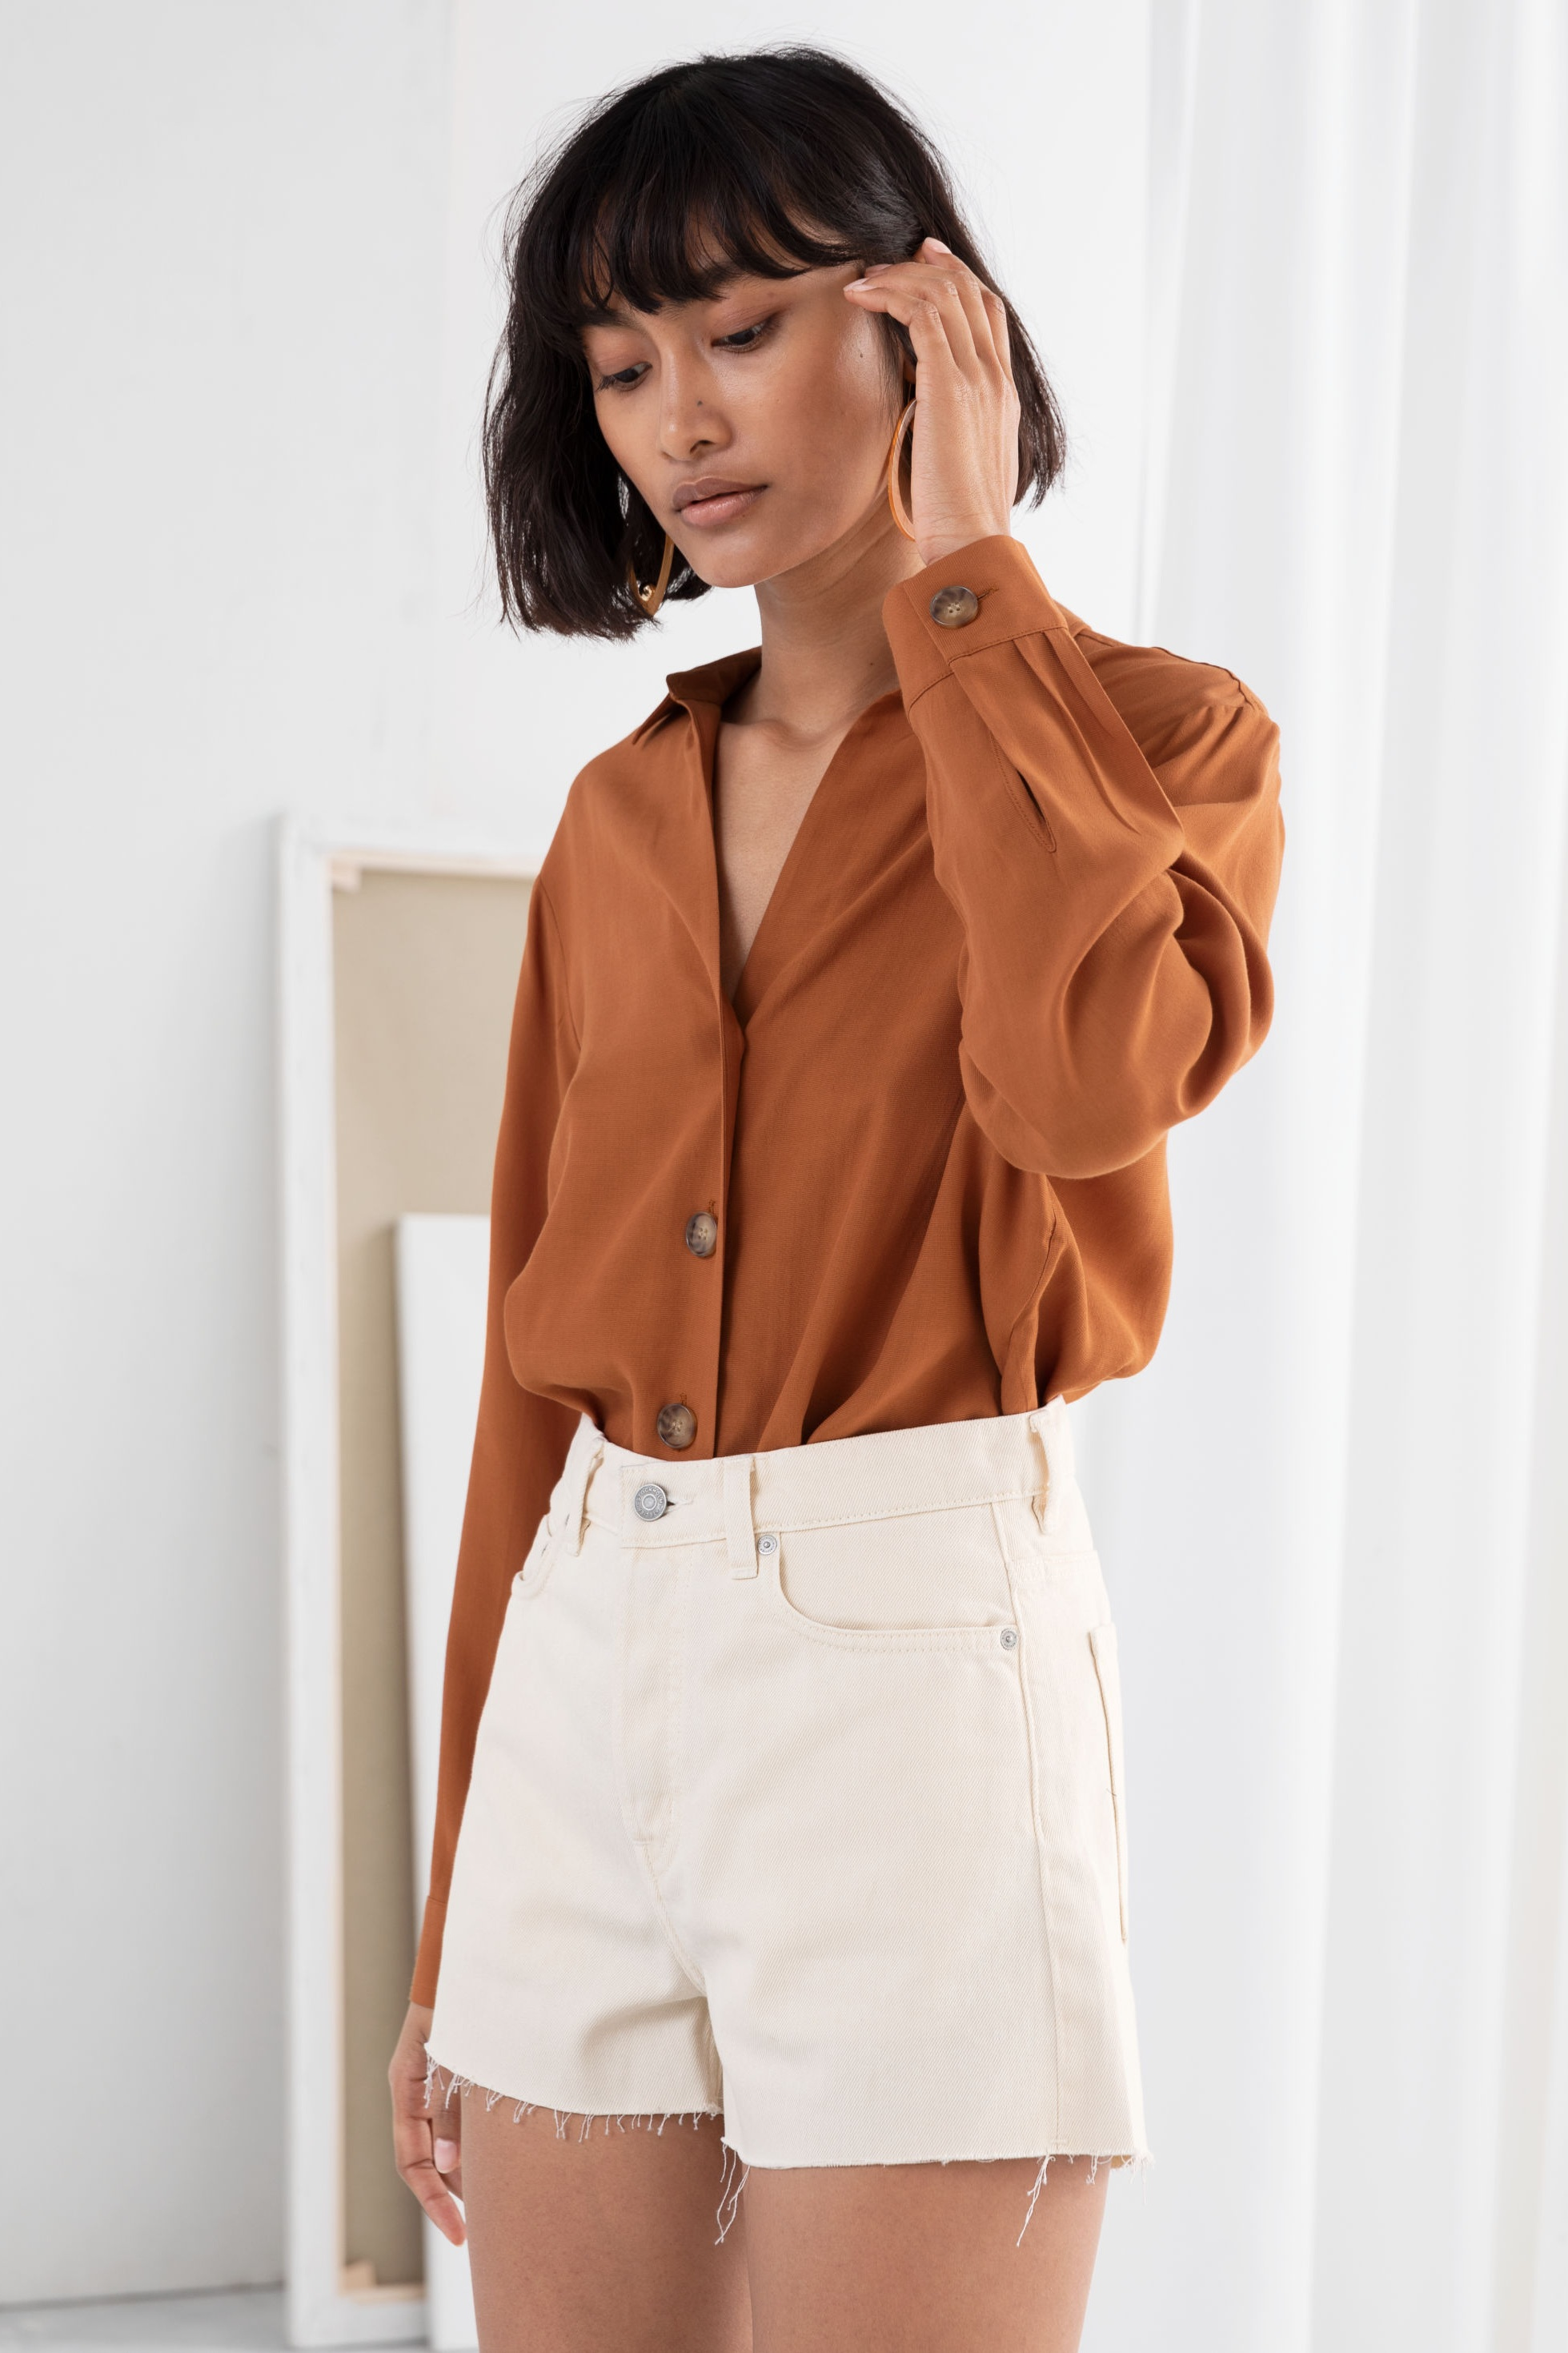 Rust Button Up Blouse, $59, & Other Stories